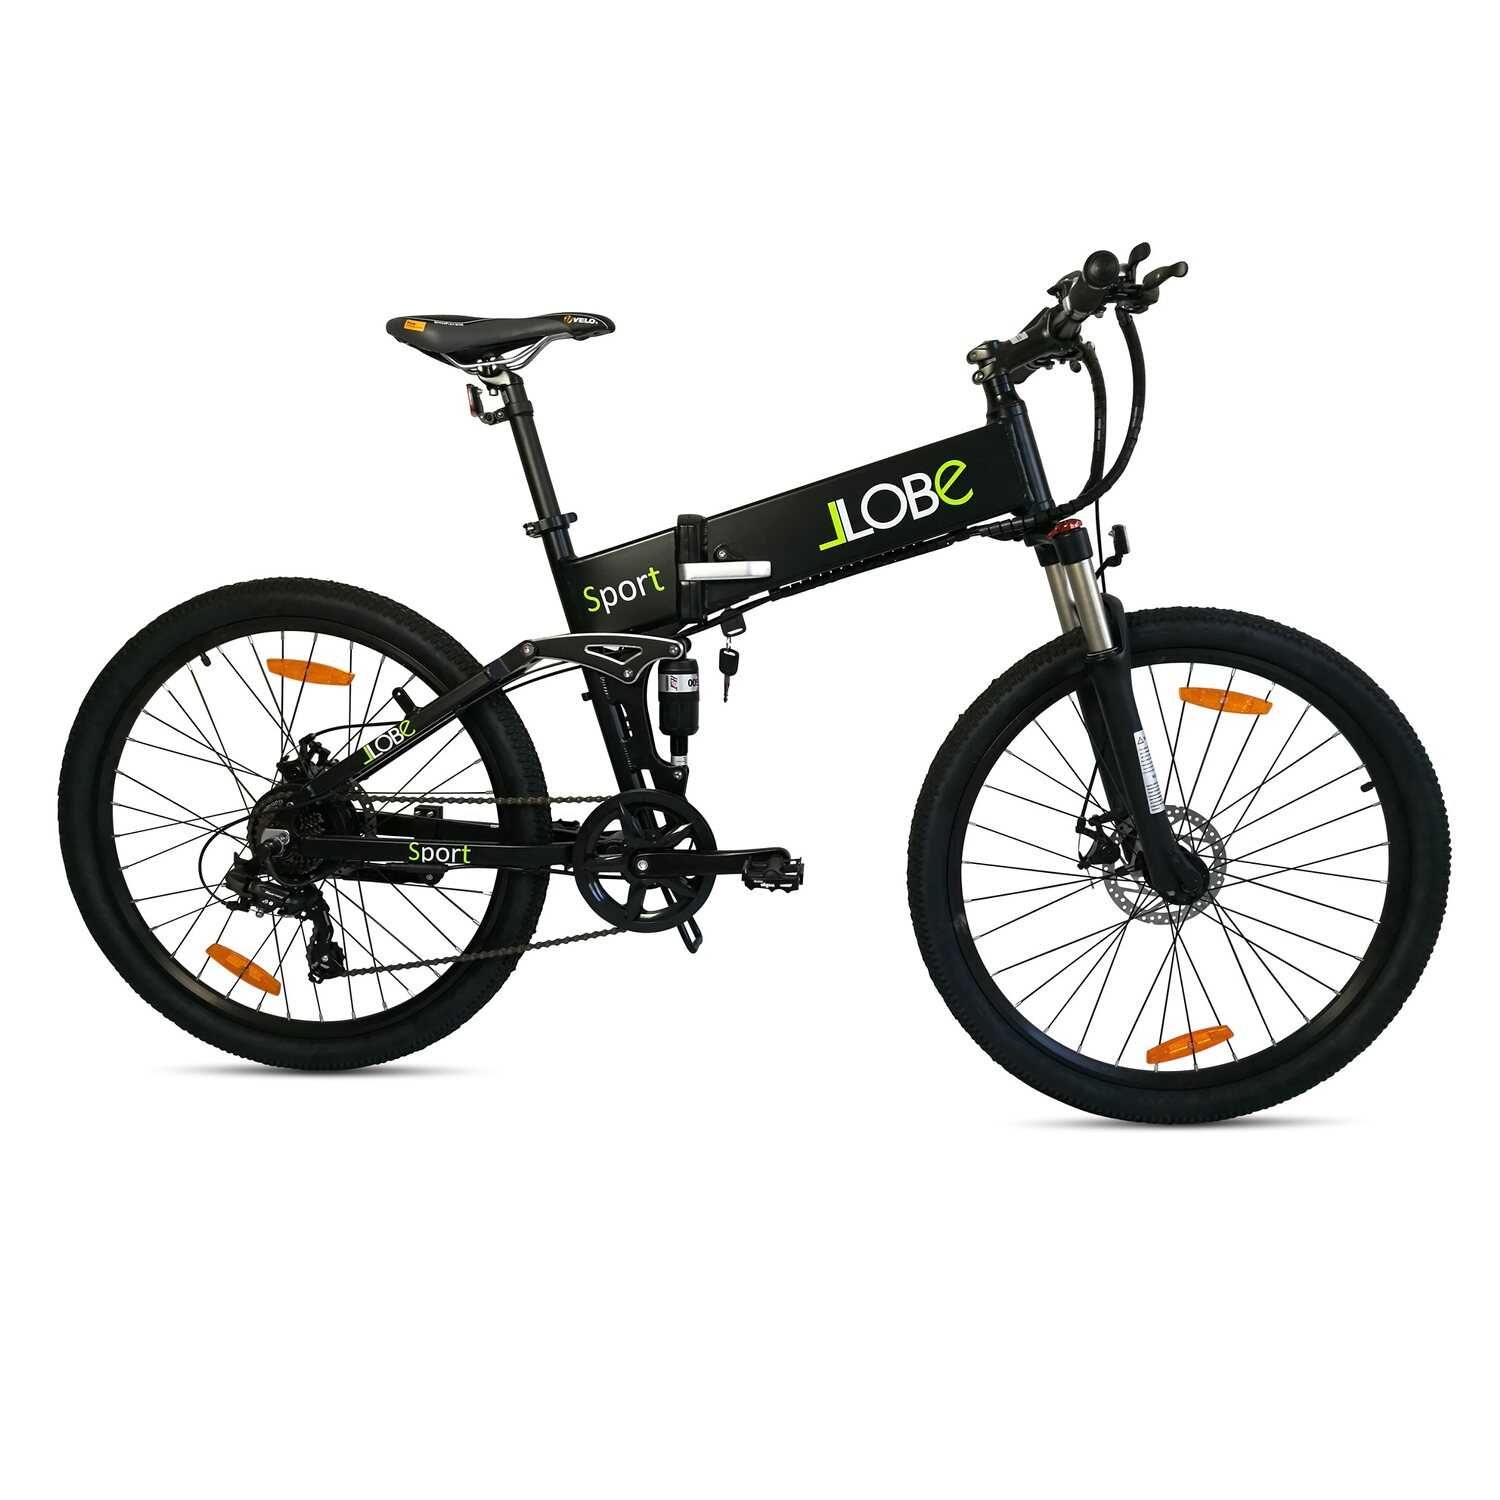 llobe e bike faltbar 26 alu mtb sport schwarz kaufen bei obi. Black Bedroom Furniture Sets. Home Design Ideas